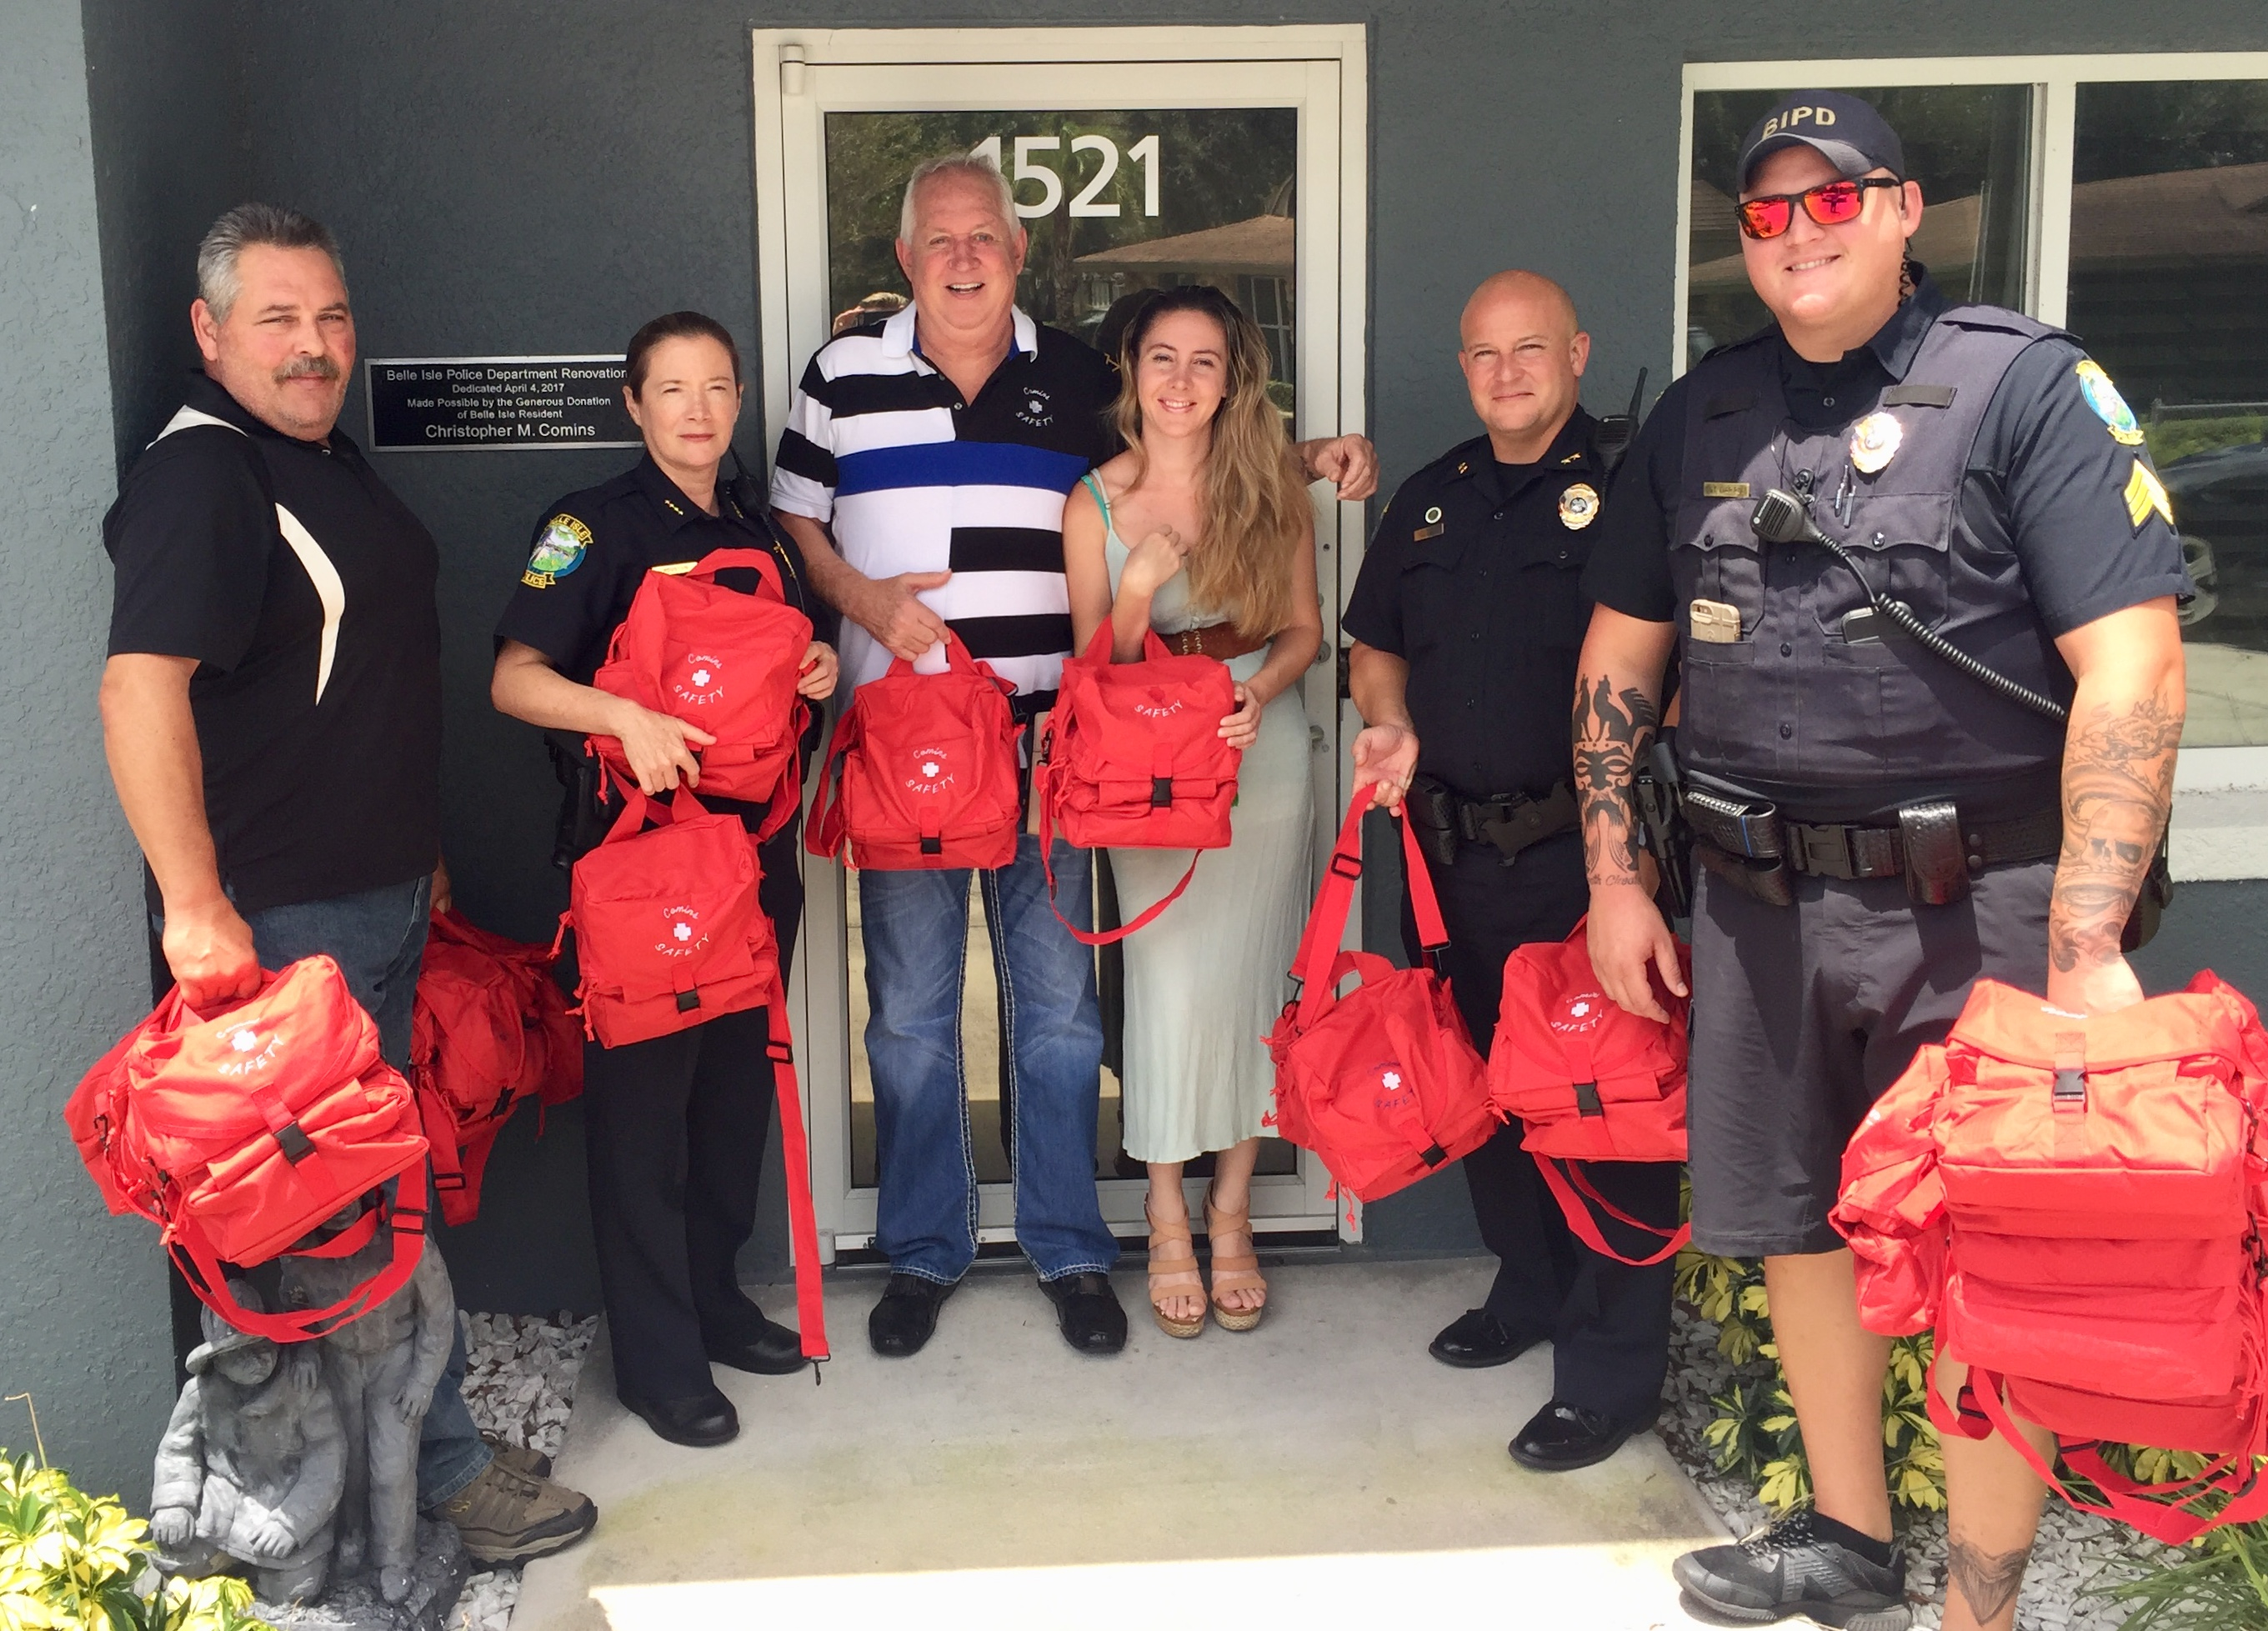 BELLE ISLE, Fla. Chris Comins (center, striped shirt) provided the Belle Isle police with trauma kits for school protection in the event of disaster or tragedy. Photo courtesy of Chris Comins.